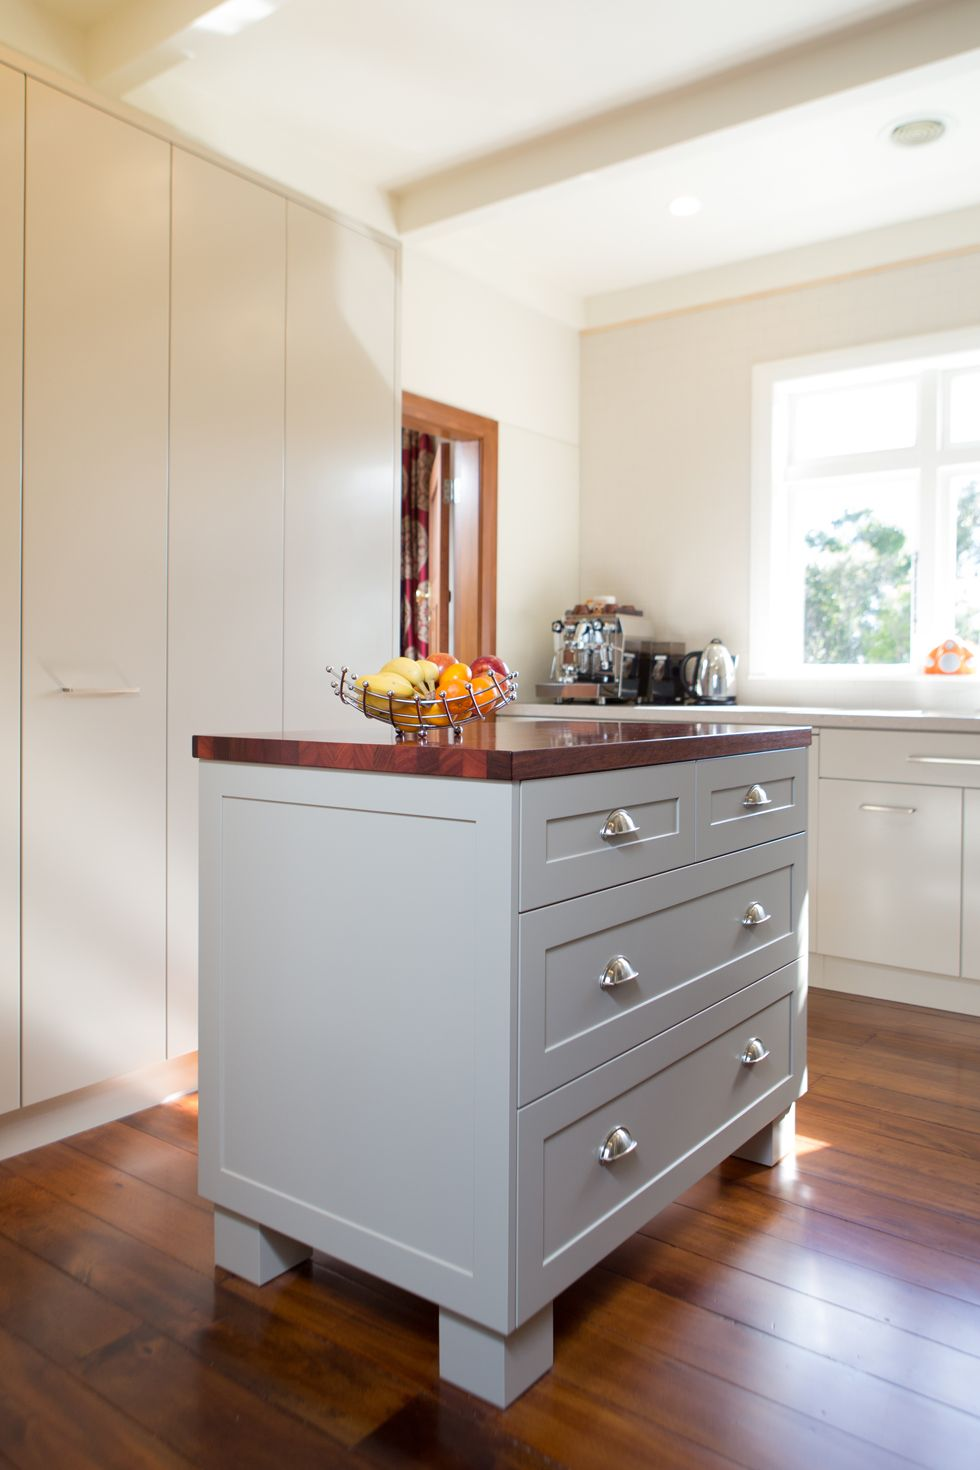 Kitchen 530 By Sally Steer Design, Wellington. New Zealand. Cup Pull  Handles On